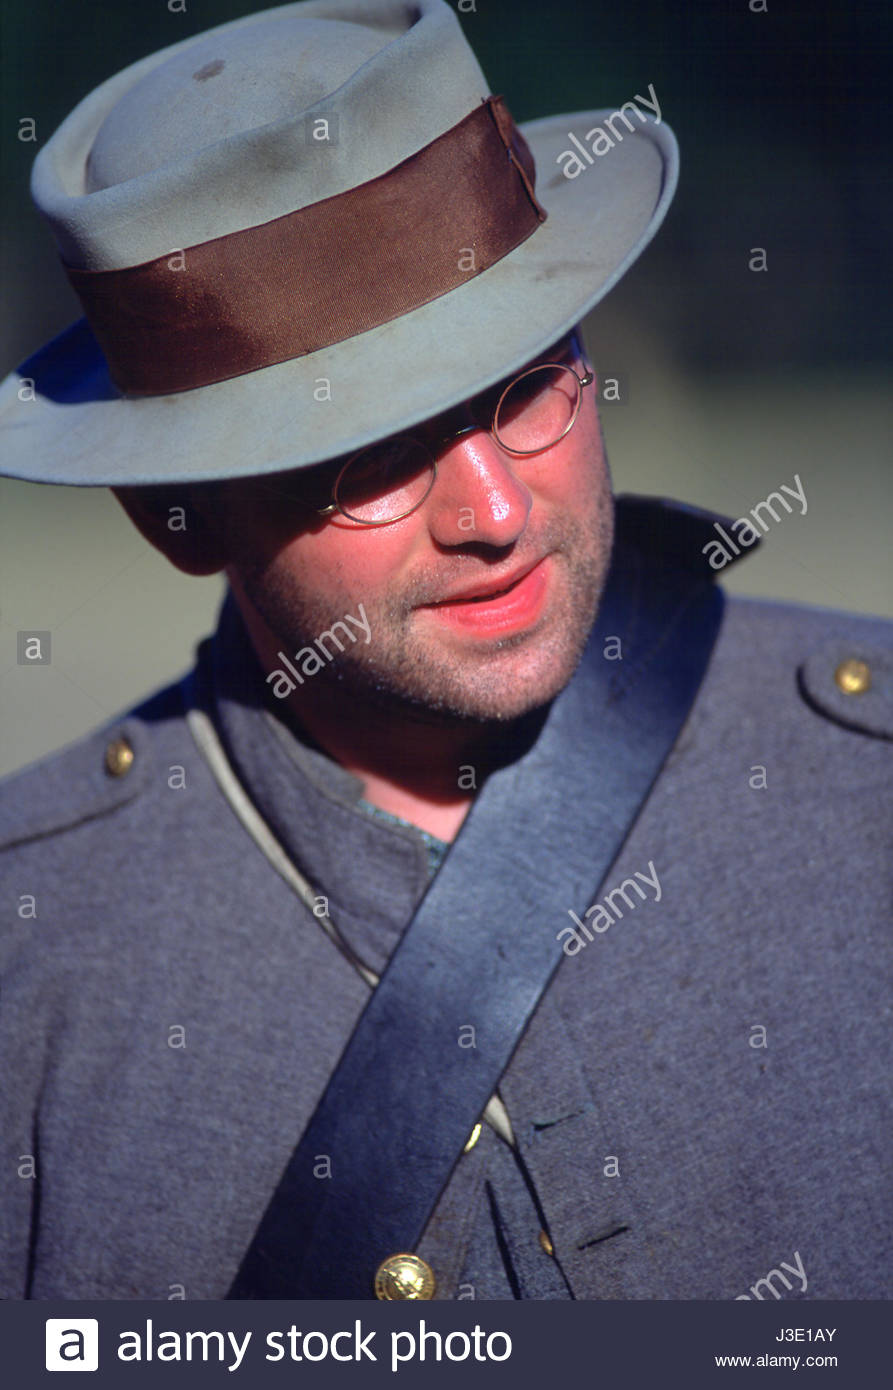 Willamette Mission State Park, Marion County, Oregon, U.S.A. Caucasian male wearing glasses and a felt hat. Civil - Stock Image